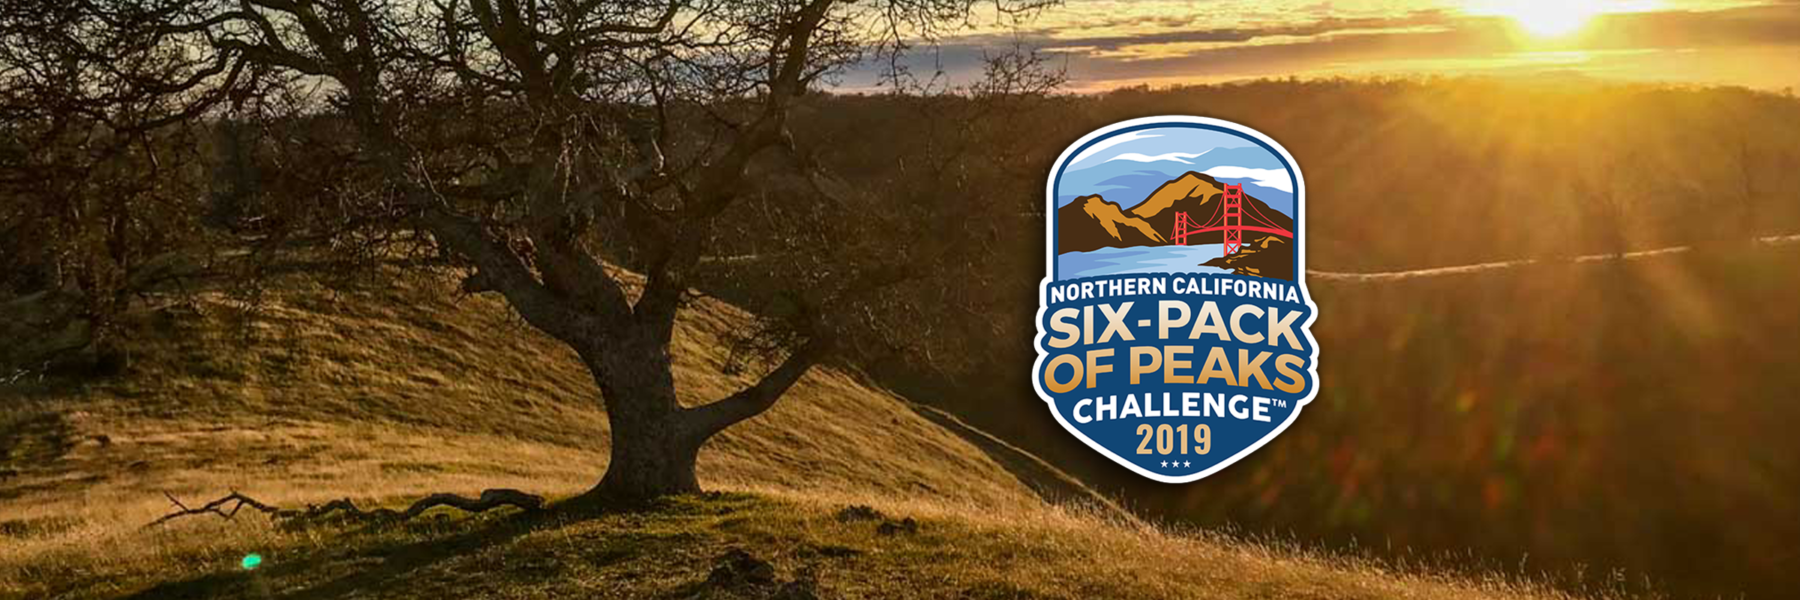 2019 NorCal Six-Pack of Peaks Challenge Discussion Forum